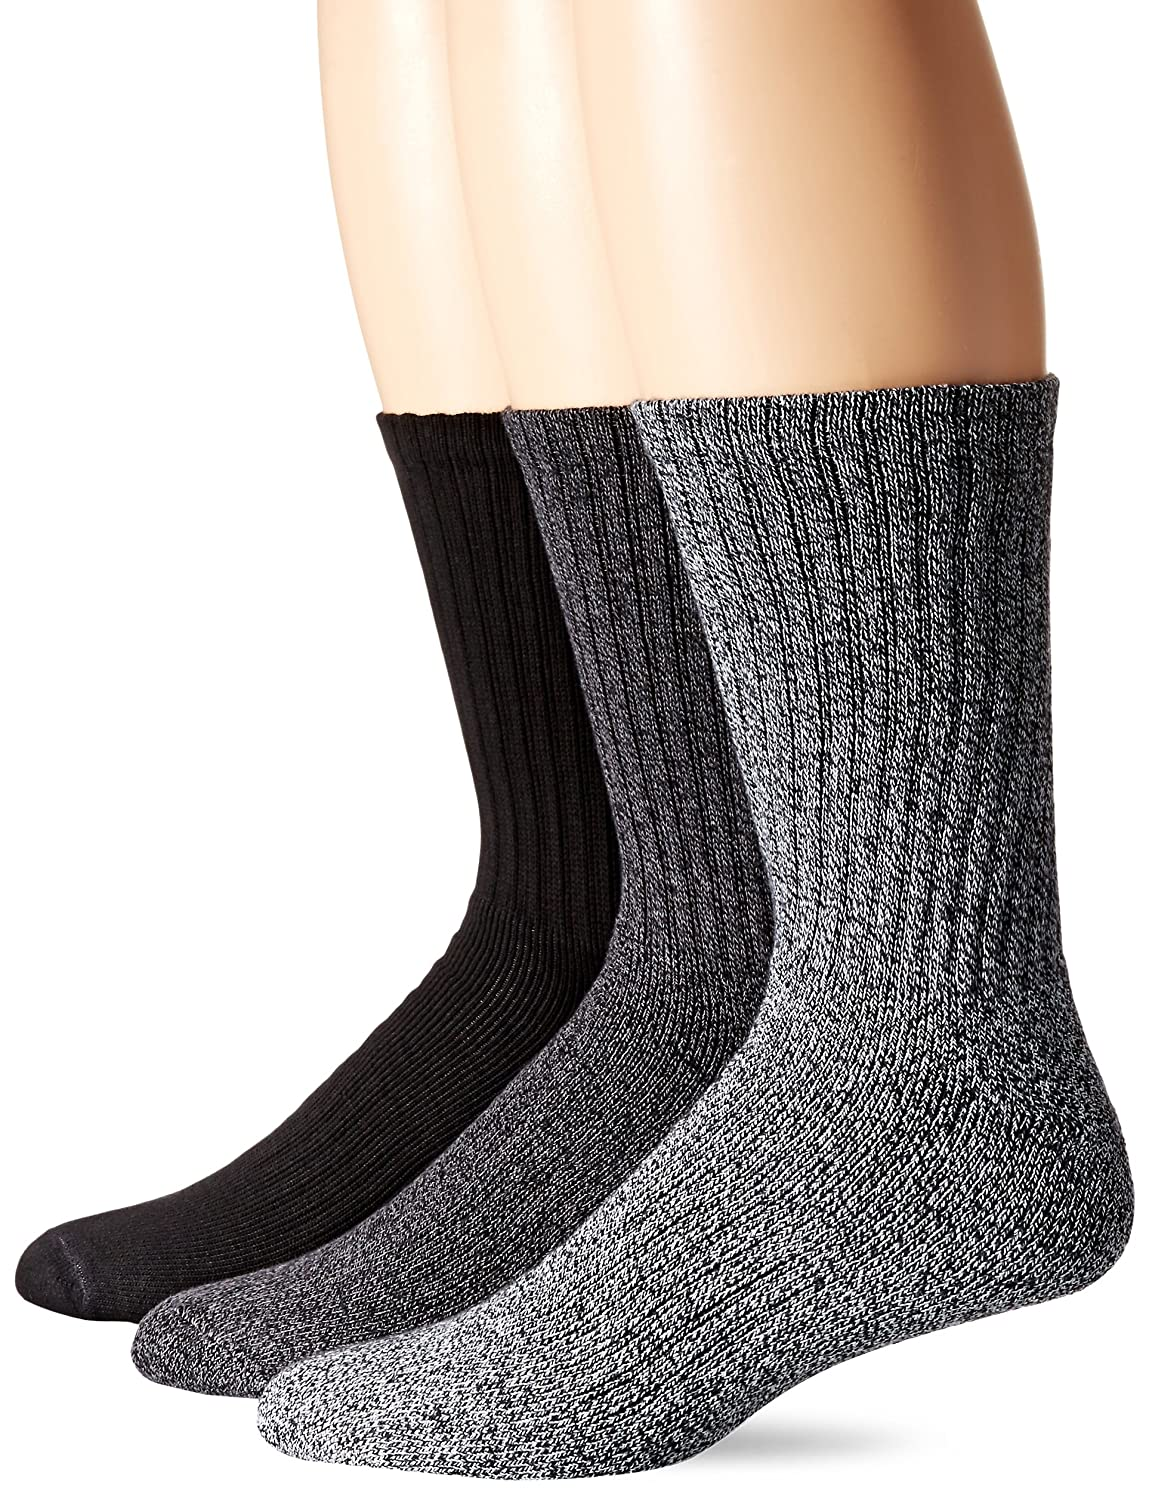 Dockers Men's 3 Pack Enhanced and Soft Feel Cushion Crew Socks Black 10-13 Sock/6-12 Shoe Royce Too D31062